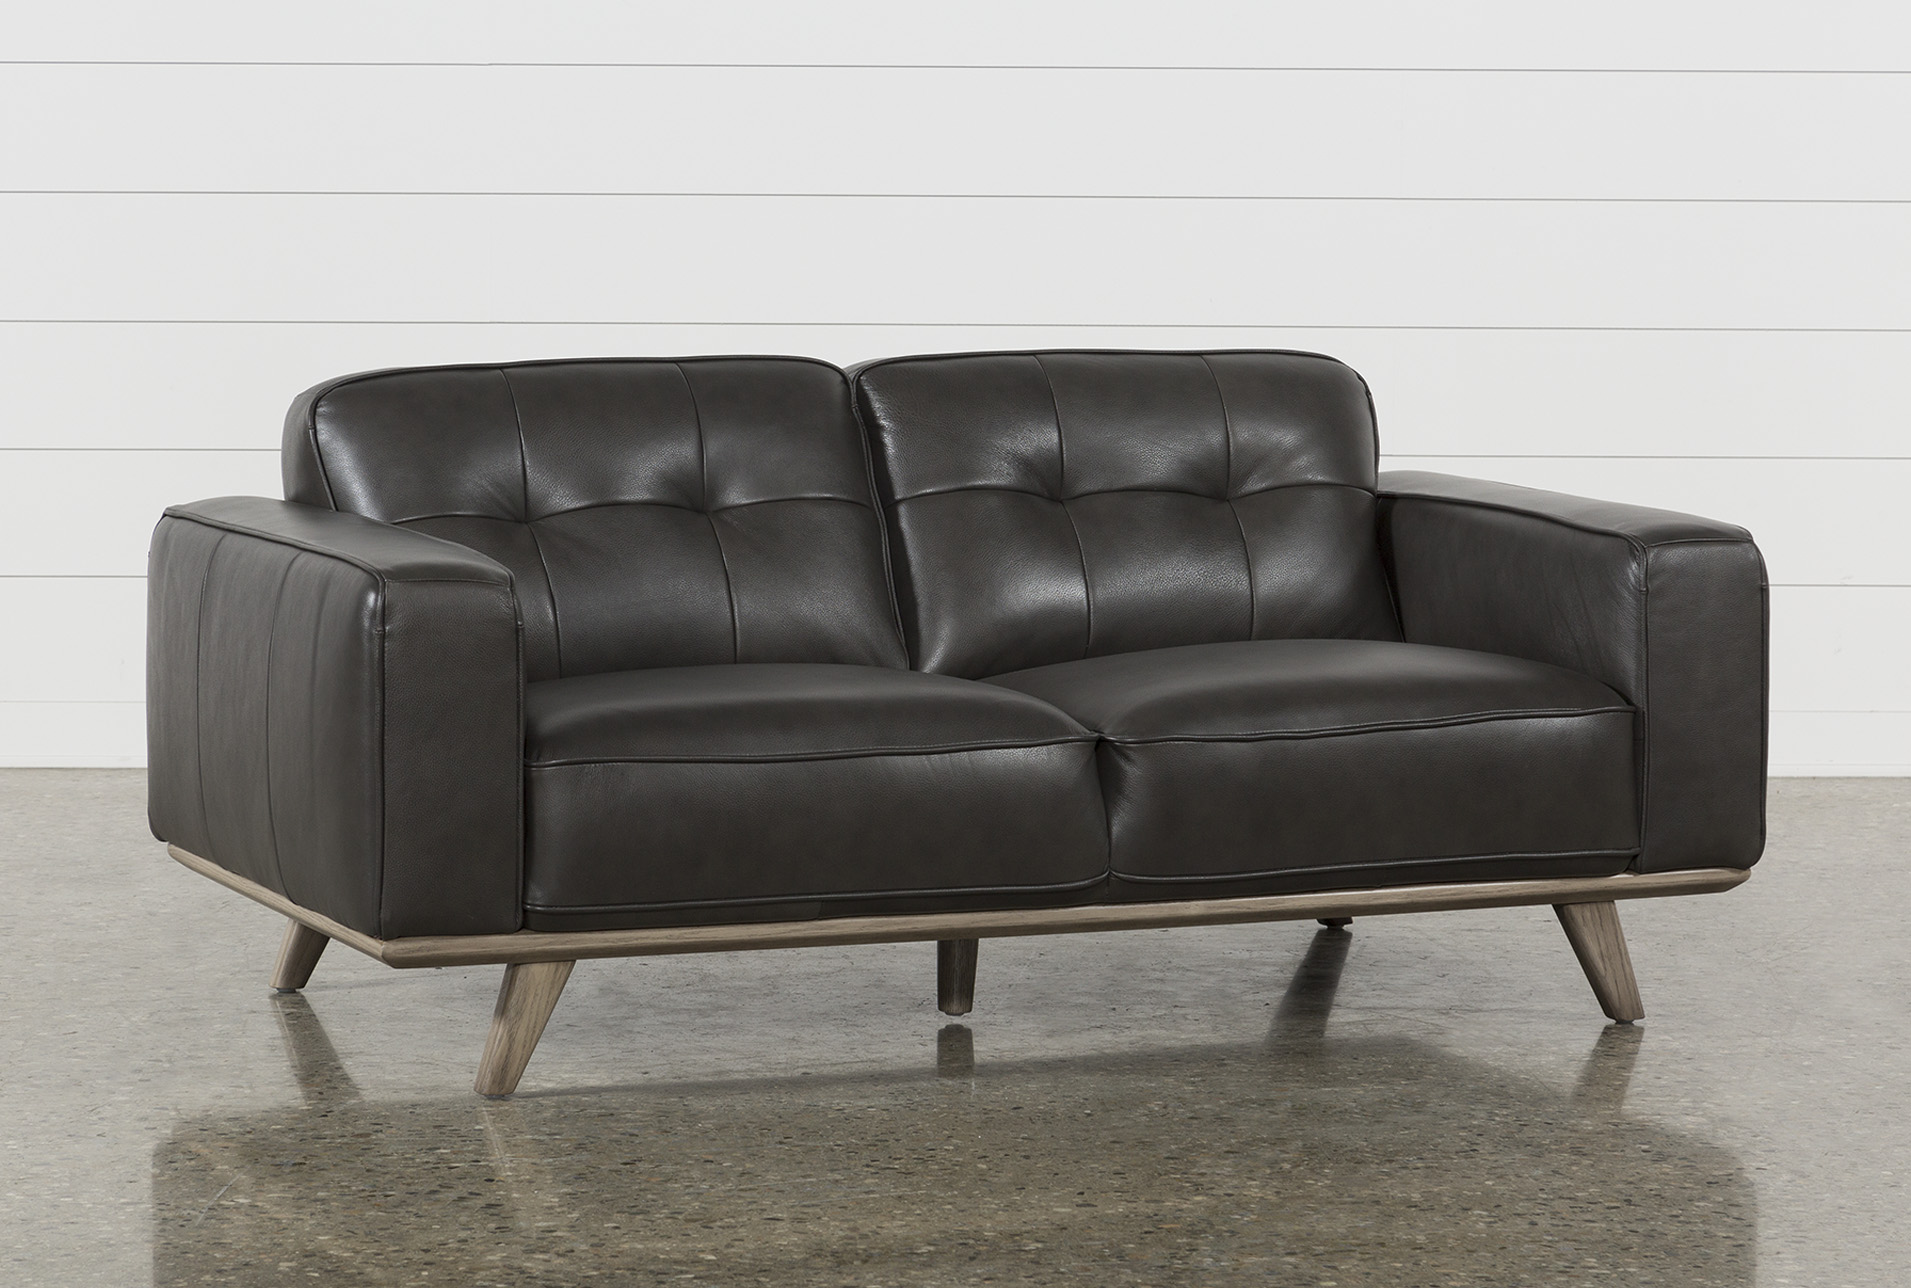 Caressa Leather Dark Grey Loveseat (Qty: 1) has been successfully added to  your Cart.